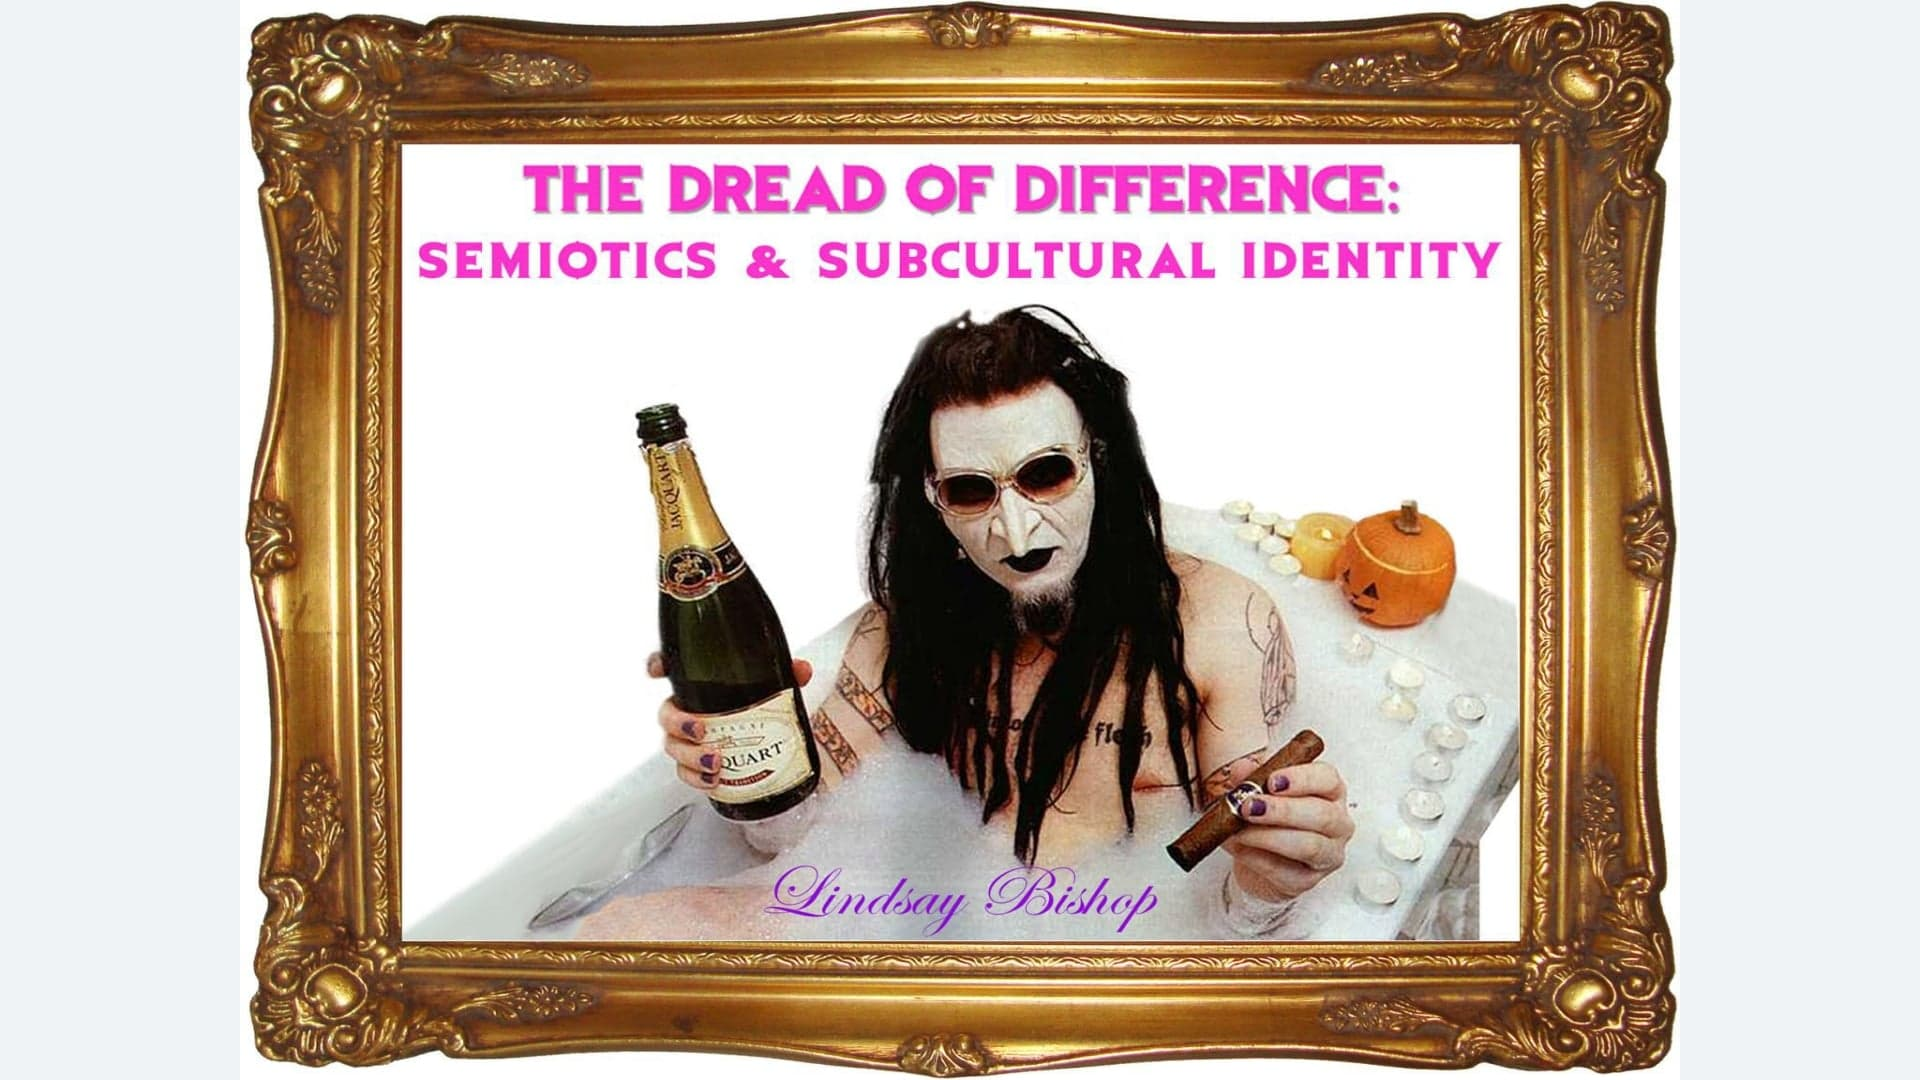 The Dread of Difference: Subcultural Semiotics and Identity - ONGOINGThe human understanding when it has once adopted an opinion (either as being the received opinion or as being agreeable to itself) draws all things to support and agree with it. (Bacon, F 'Novum Organum': 1620)Subcultures and mainstream culture have a conflicting yet symbiotic relationship; each relies on the other to exist, yet they are fundamentally opposed to each other. Due to the very conscious and deliberate decision to reject sanctioned visual media, subcultures occupy a distinct position in relation to mass media and its influence. Specifically, this lecture will question some of the common assumptions regarding the representation of subcultural communities, and highlight the broader cultural influence of these representations.Visual media is central to how we represent, make meaning, and communicate in the world around us. Therefore, as cultural practitioners it is crucial to develop a more sophisticated understanding of how these images are used to communicate; what they intend to represent; who they are directed toward; and how they are received.